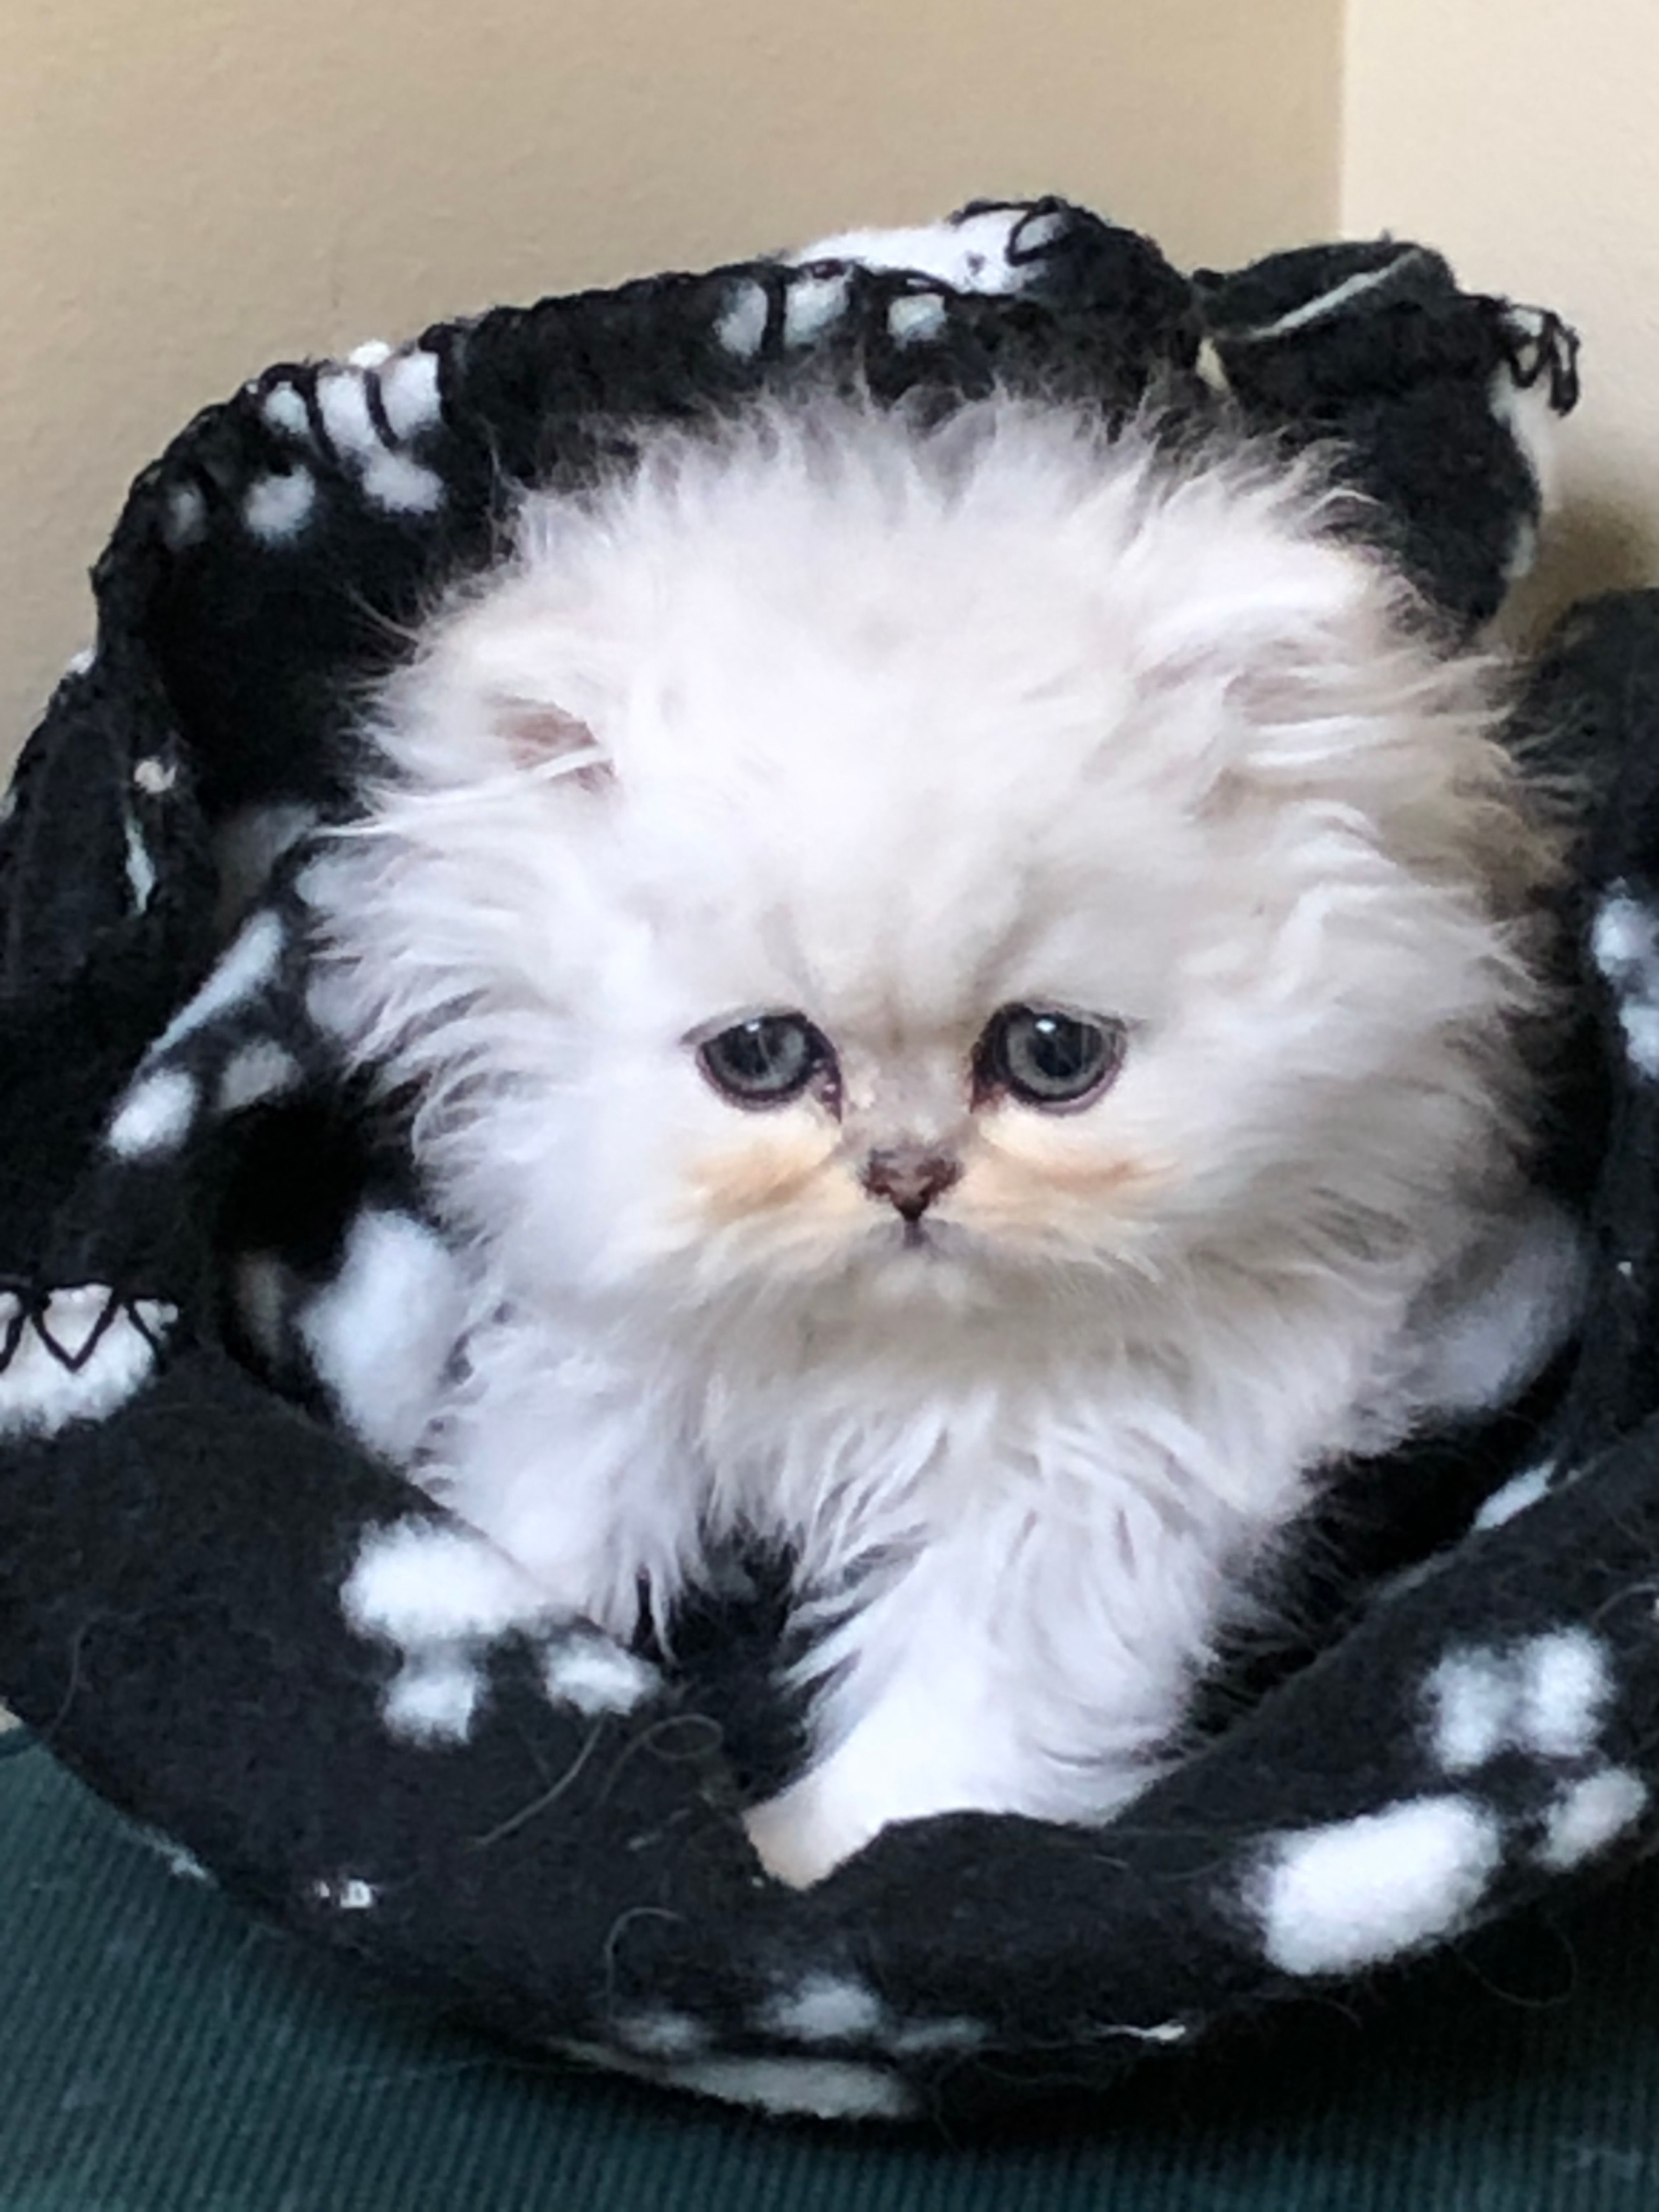 Powderpuff Kittens Are Ready To Go Two Left Teacup Persian Kittens Persian Kittens Christmas Kitten